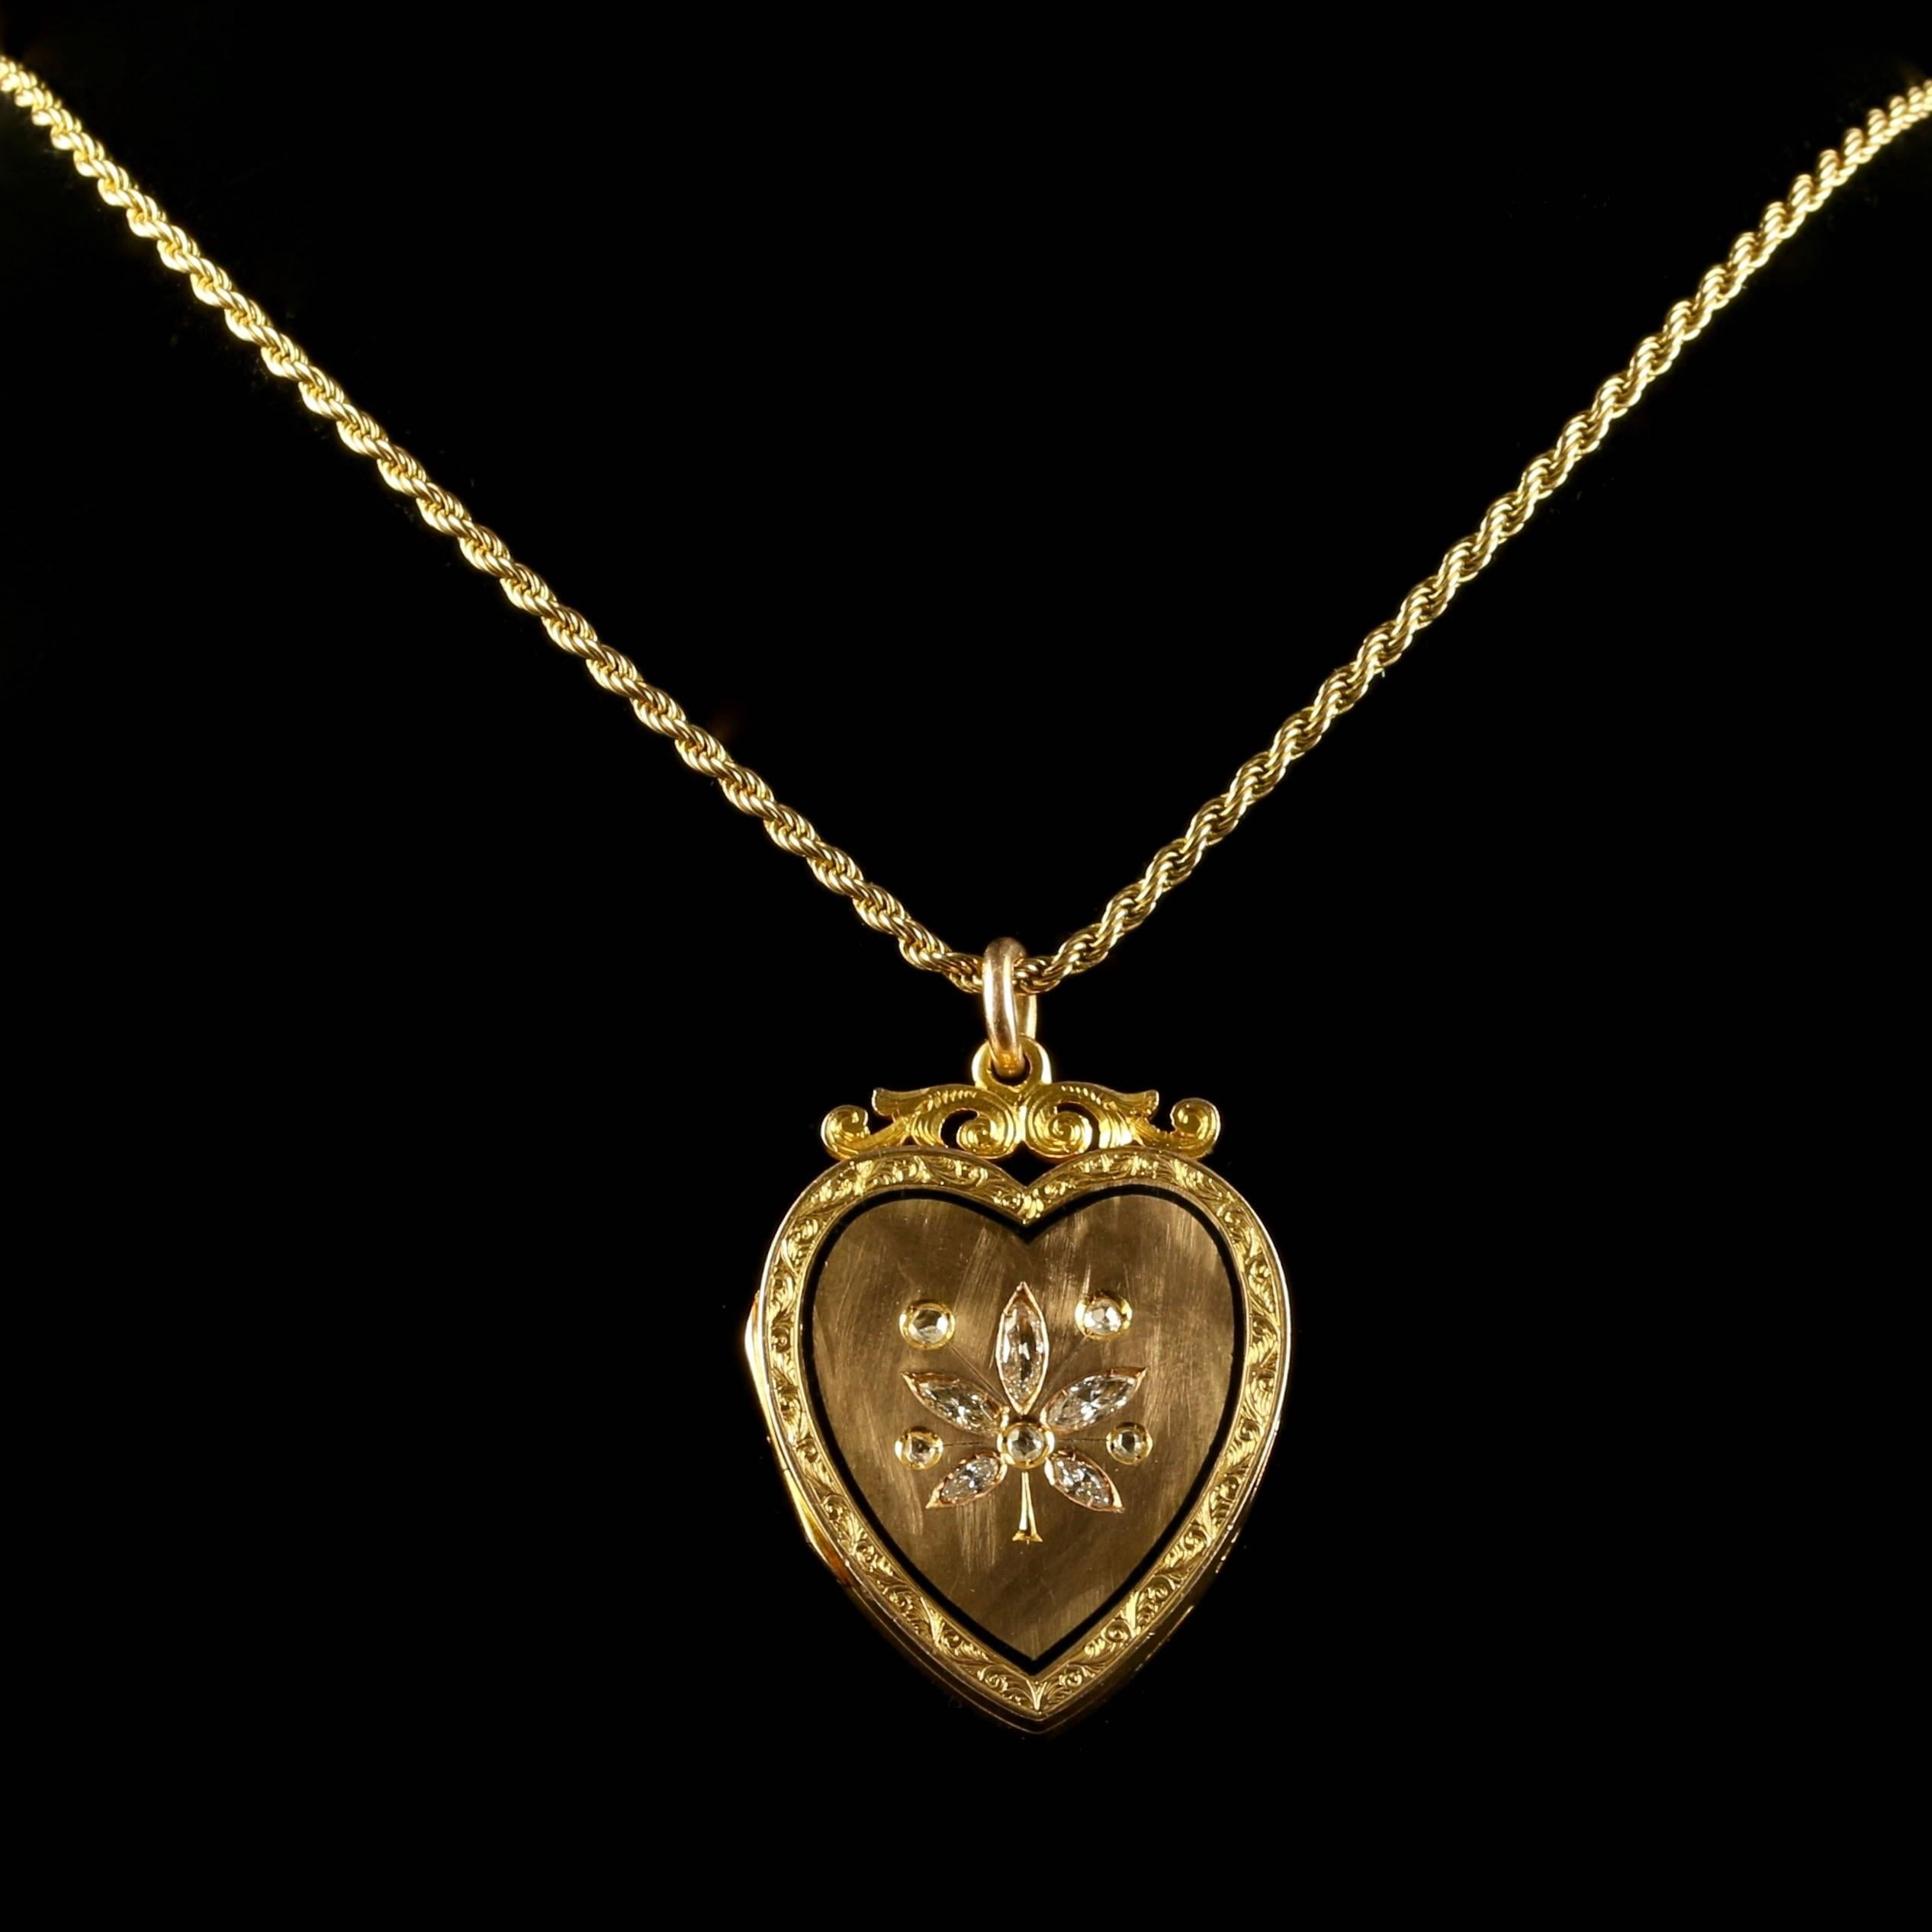 regard antique photo id at necklaces jewelry heart pendant org j georgian locket acrostic